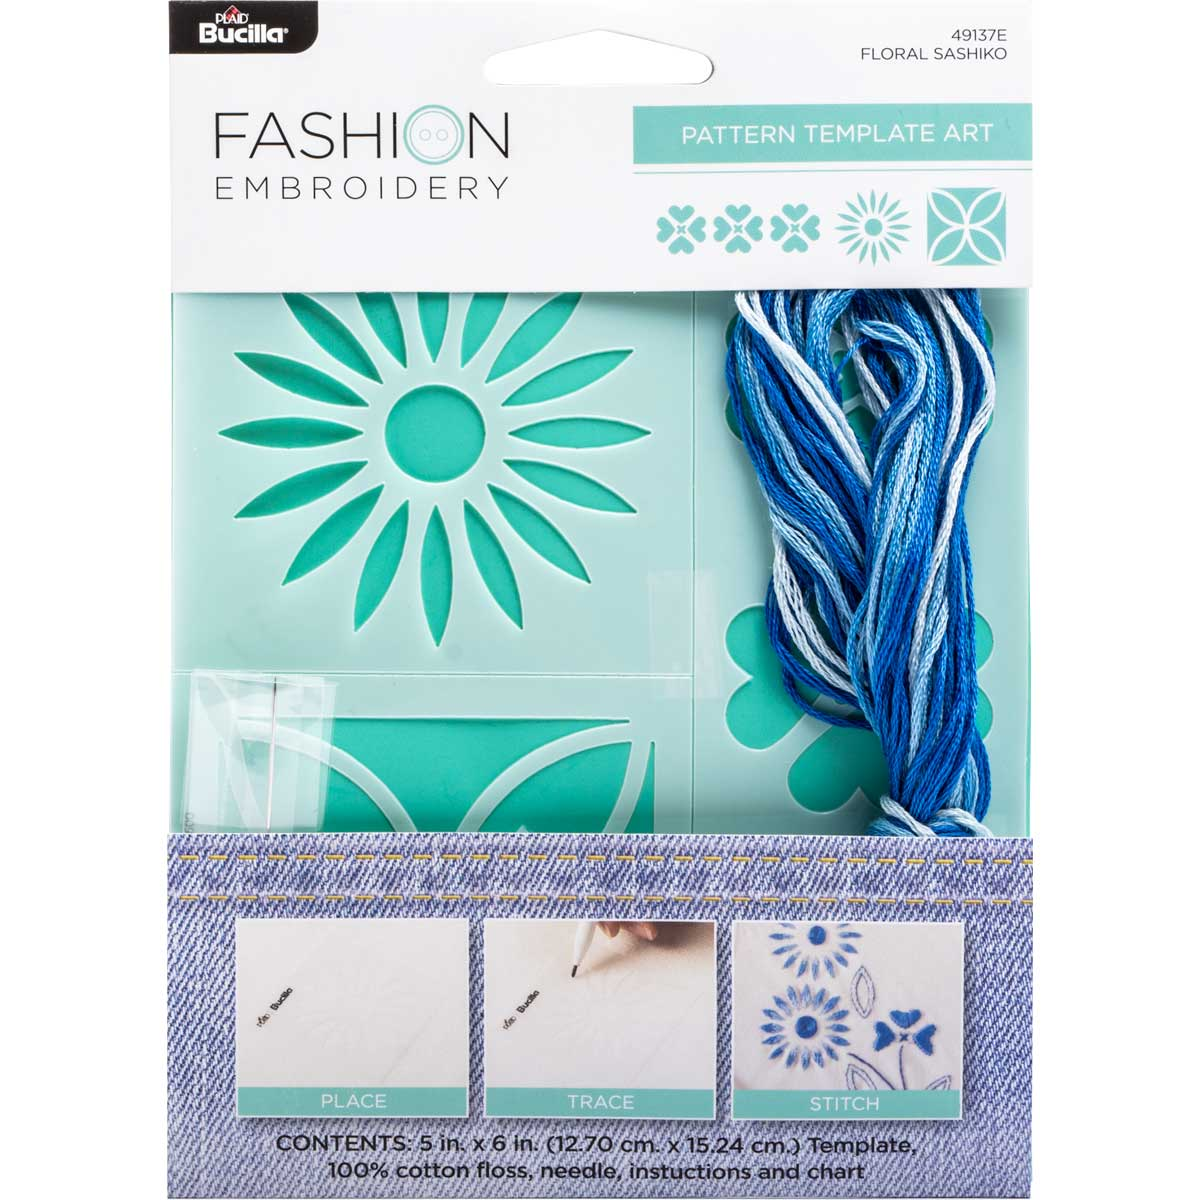 Bucilla ® Fashion Embroidery Kit - Shashiko Floral - 49137E